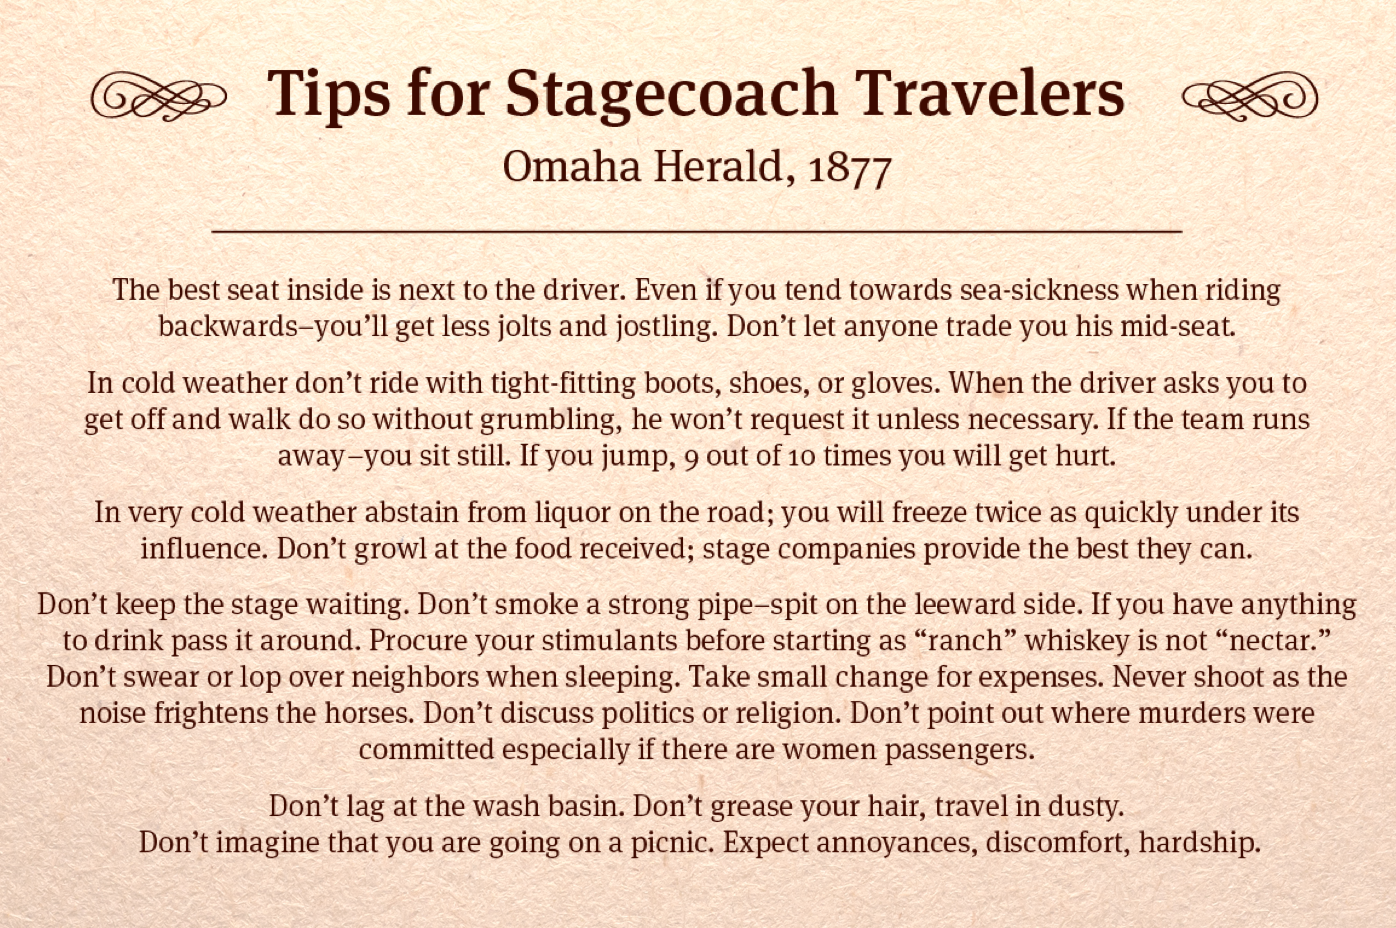 Tips for Stagecoach Travelers